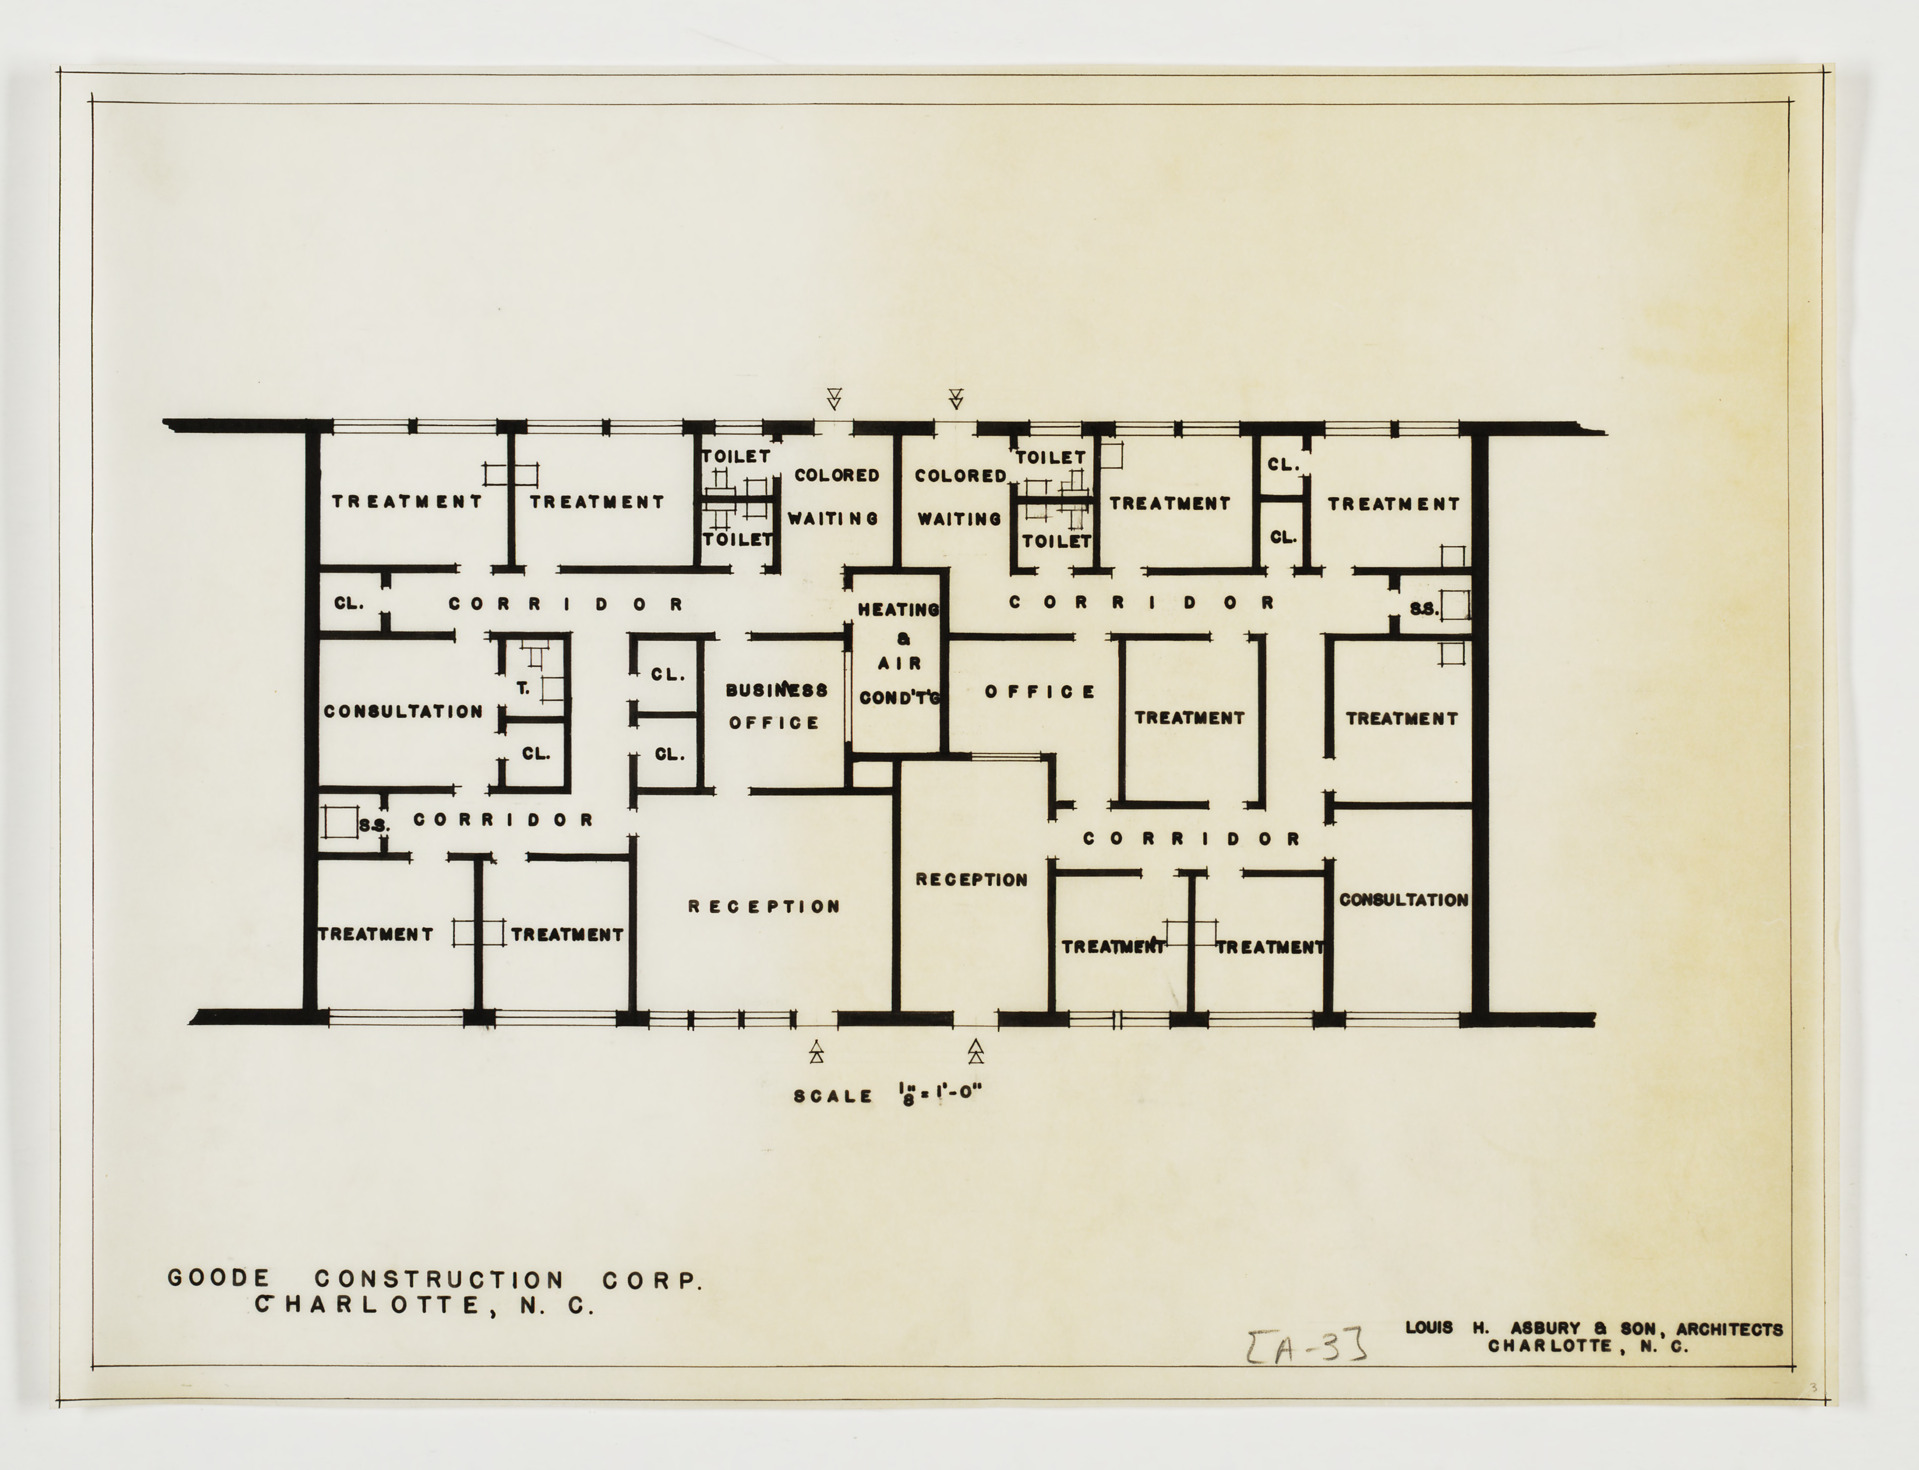 Floor Plan Goode Construction Company Office Building